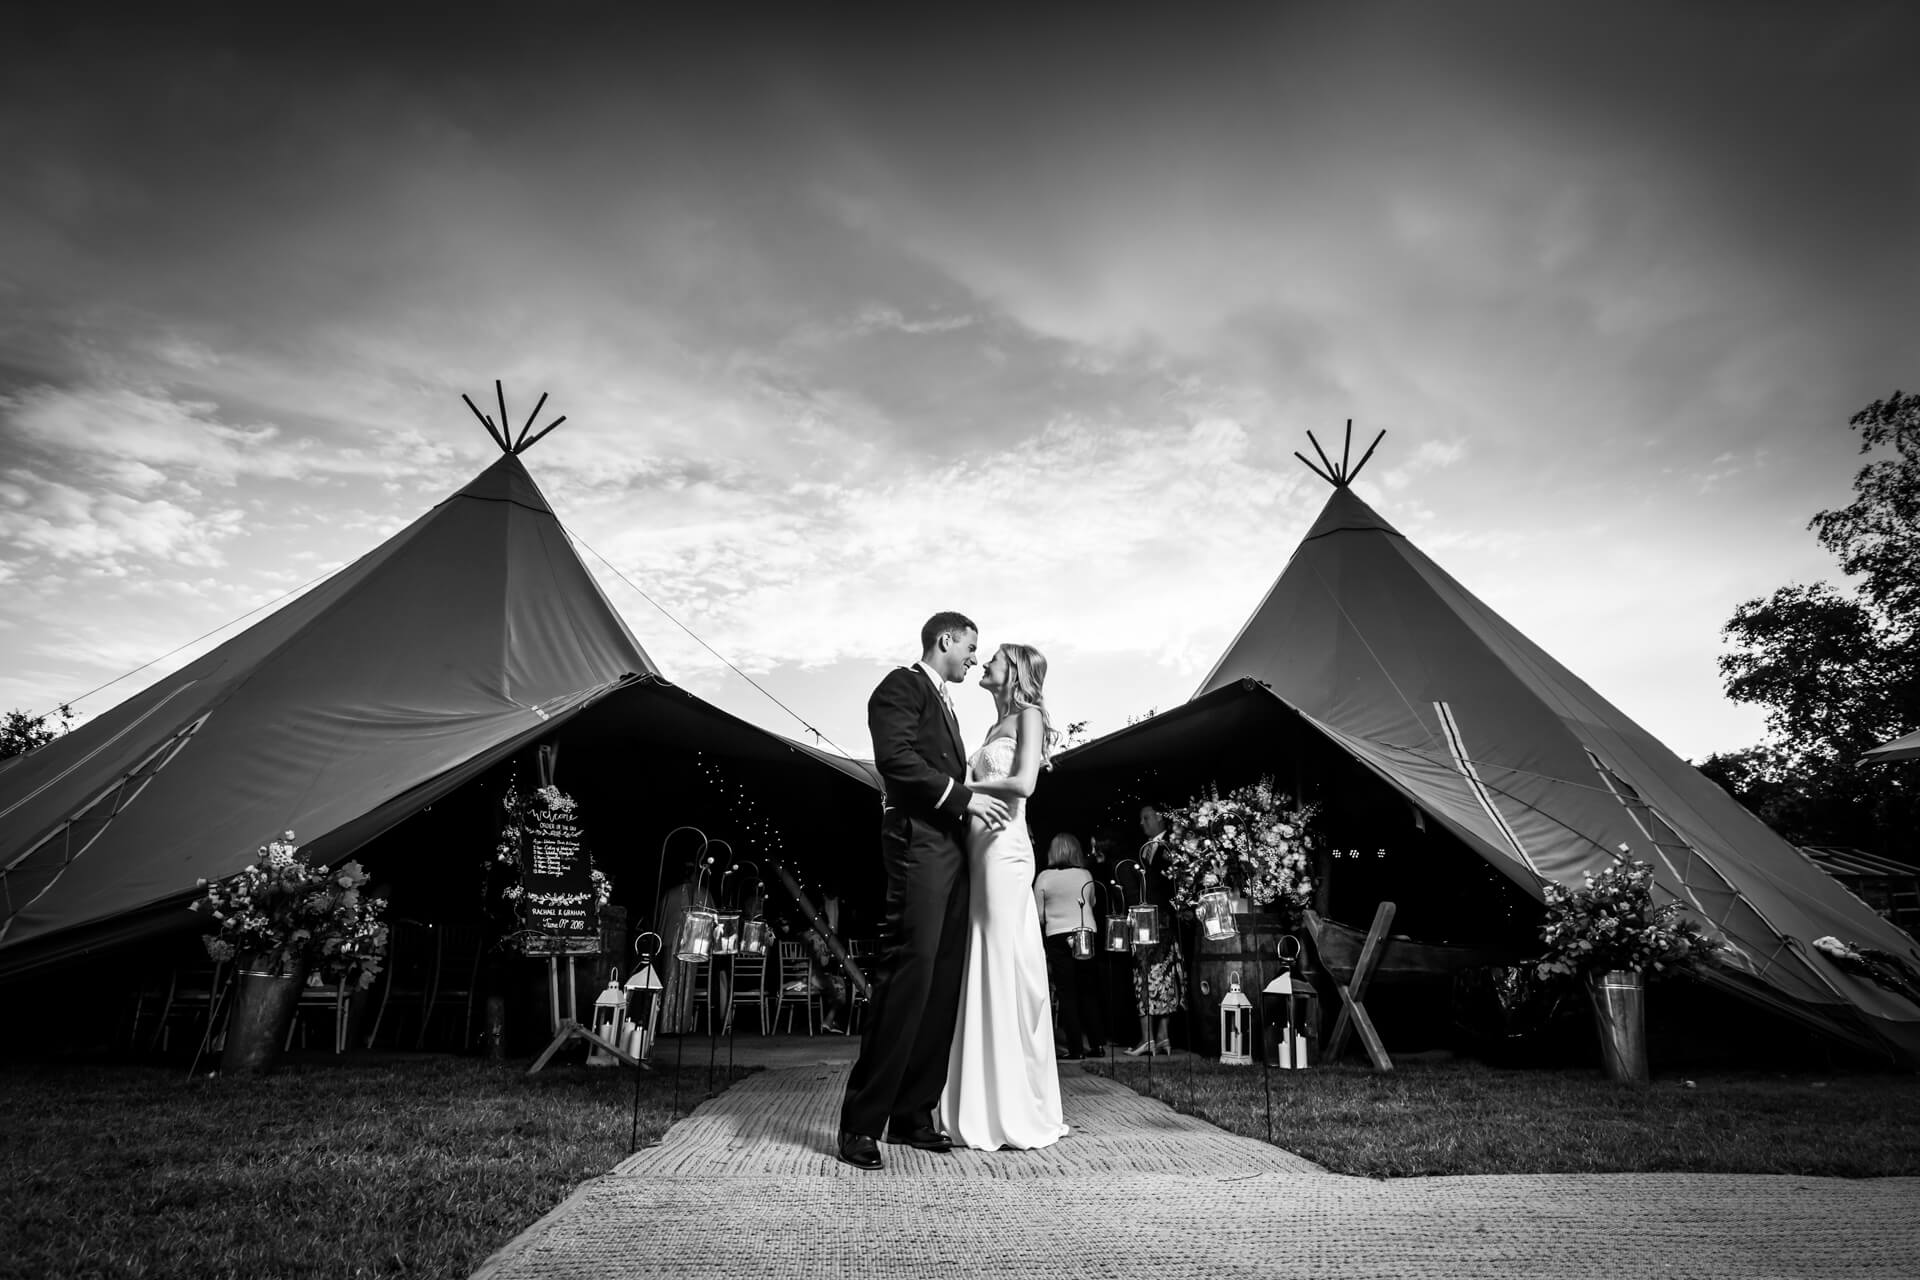 bride and groom standing together in front of a tipi